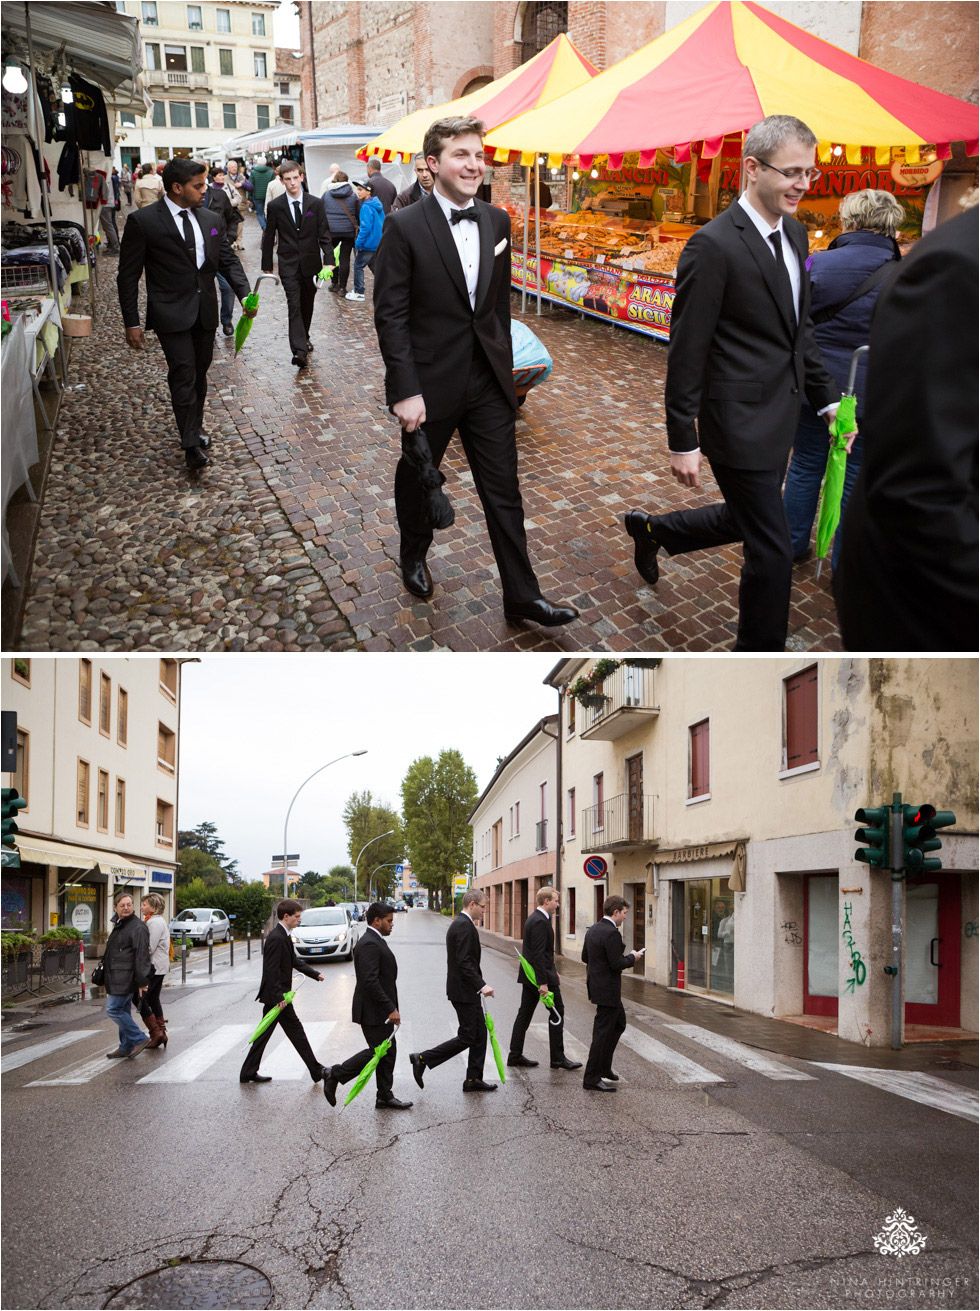 Groom and groomsmen walking to church, SS. Trinita in Bassano where several family members have also gotten married - Blog of Nina Hintringer Photography - Wedding Photography, Wedding Reportage and Destination Weddings